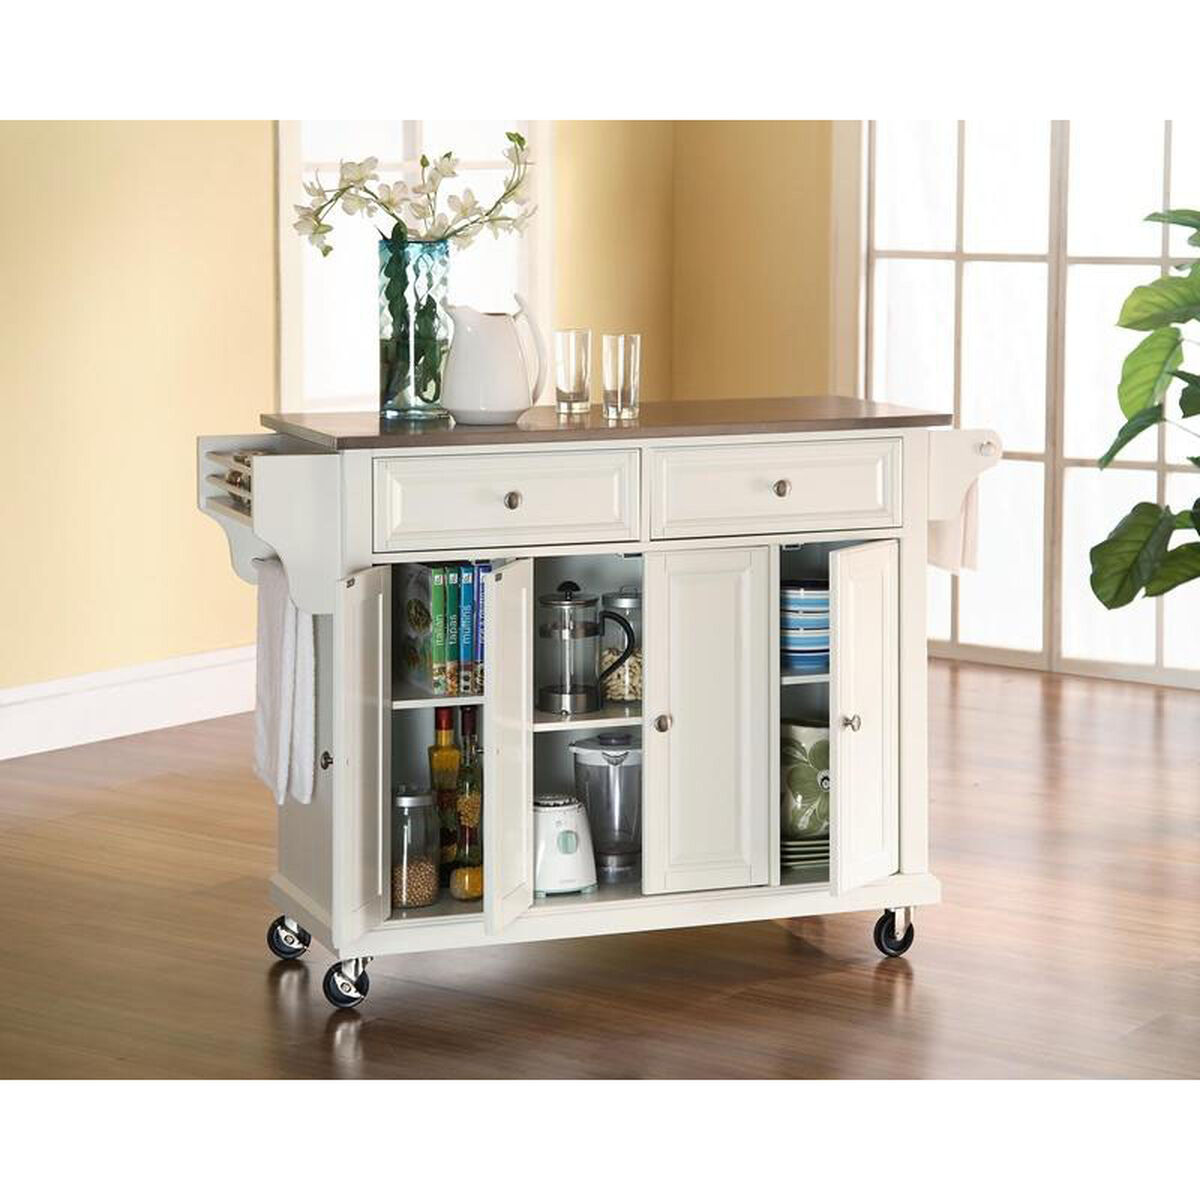 Stainless Steel Top Kitchen Island Cart with Cabinets - White Finish